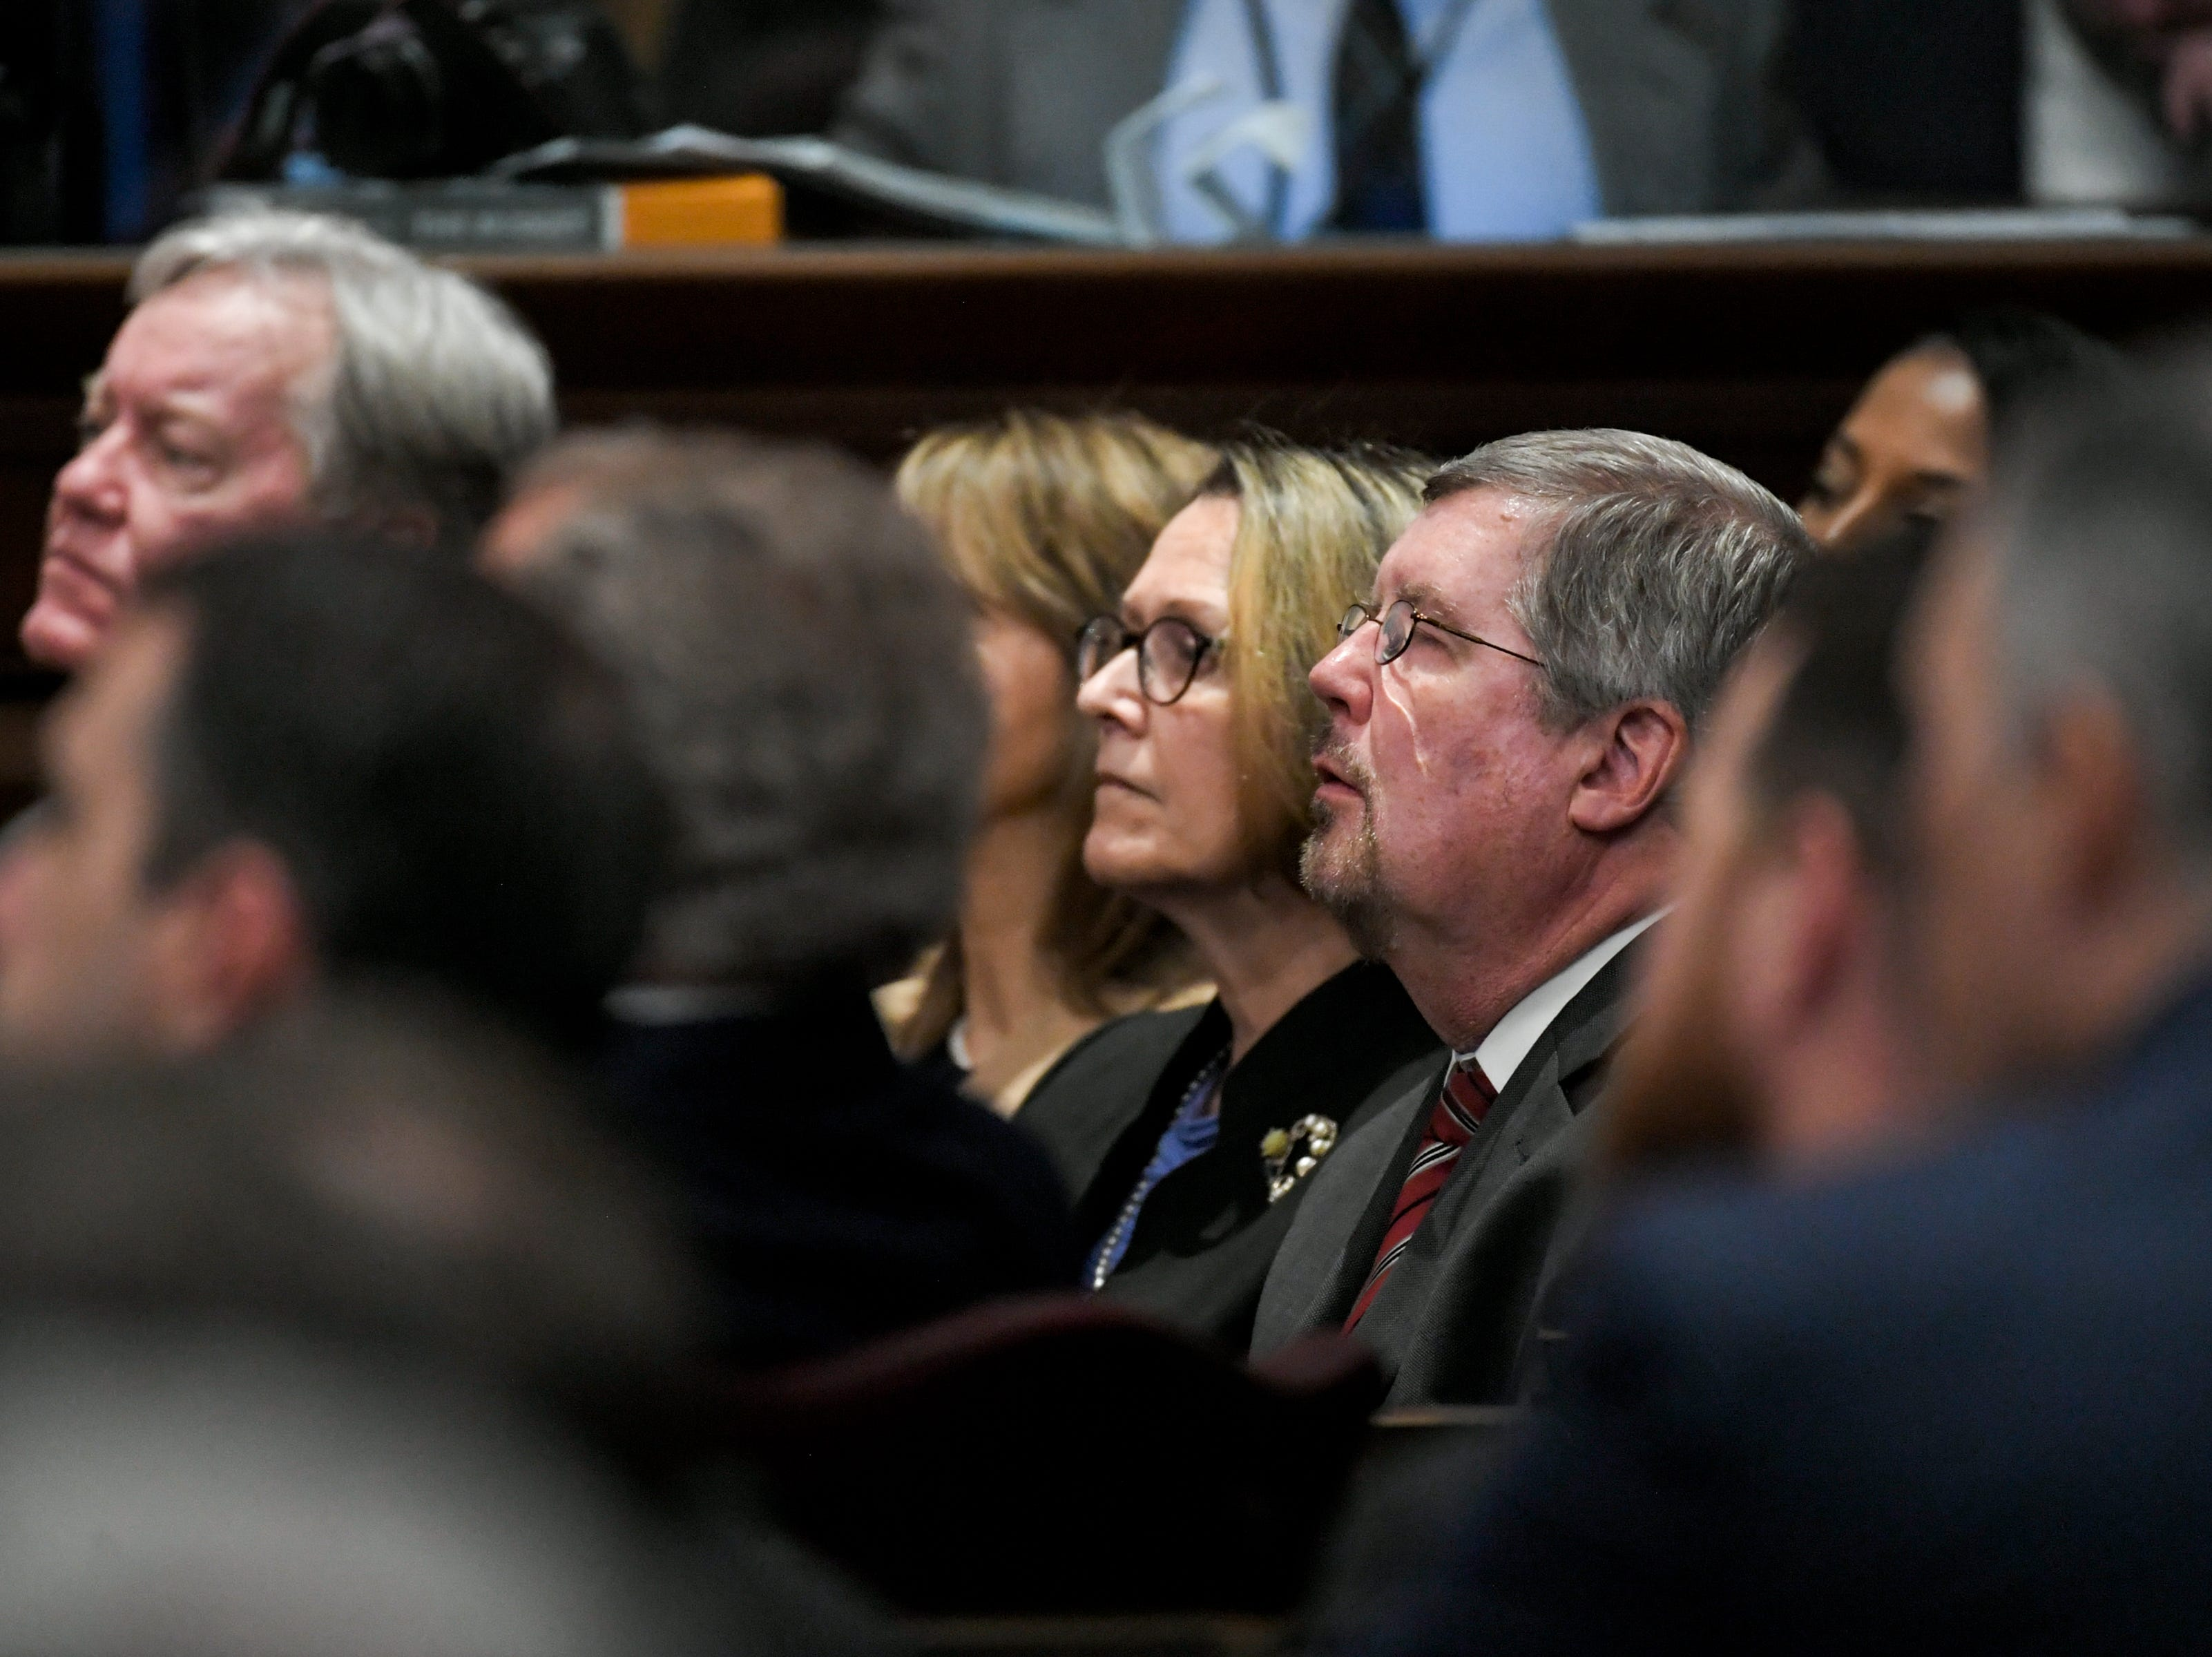 Tennessee Supreme Court Chief Justice Jeffrey Bivins and Tennessee Supreme Court Justice Connie Clark listen to Gov. Bill Lee give his first State of the State address before a joint session of the Tennessee General Assembly inside the House chambers at the state Capitol in Nashville on Monday, March 4, 2019.